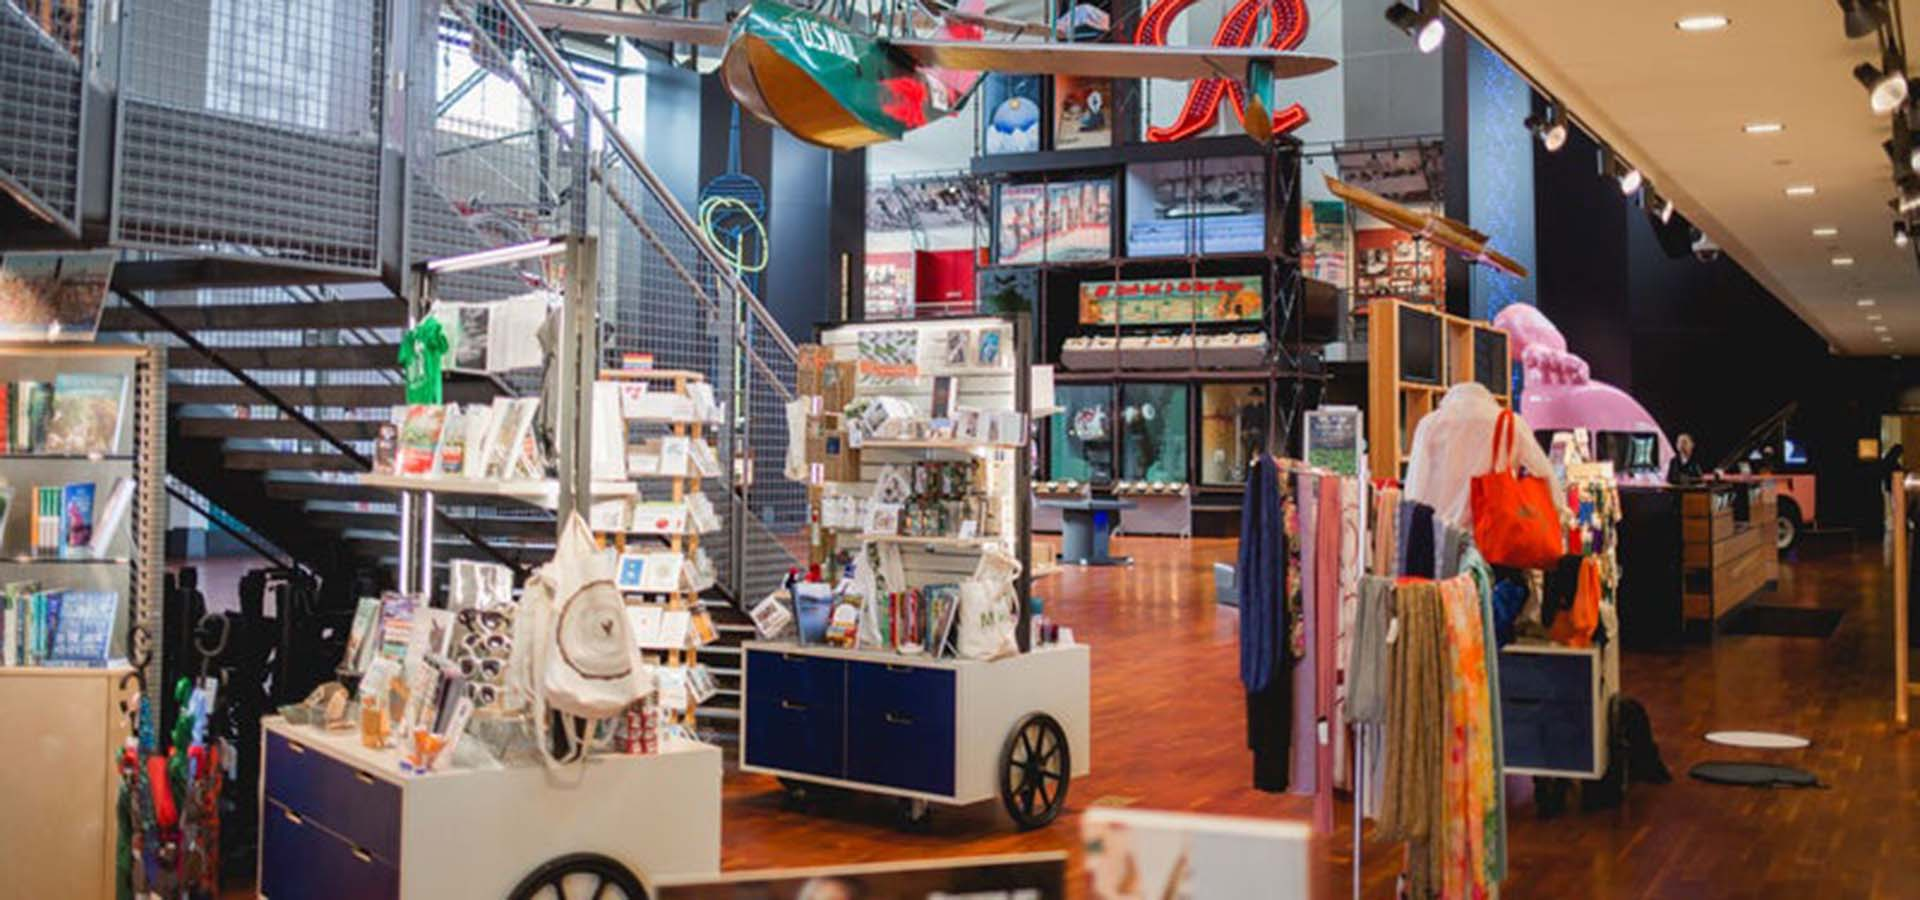 Interior view of the MOHAI Mercantile shop; view has kiosks filled with books, cards, and souvenirs.